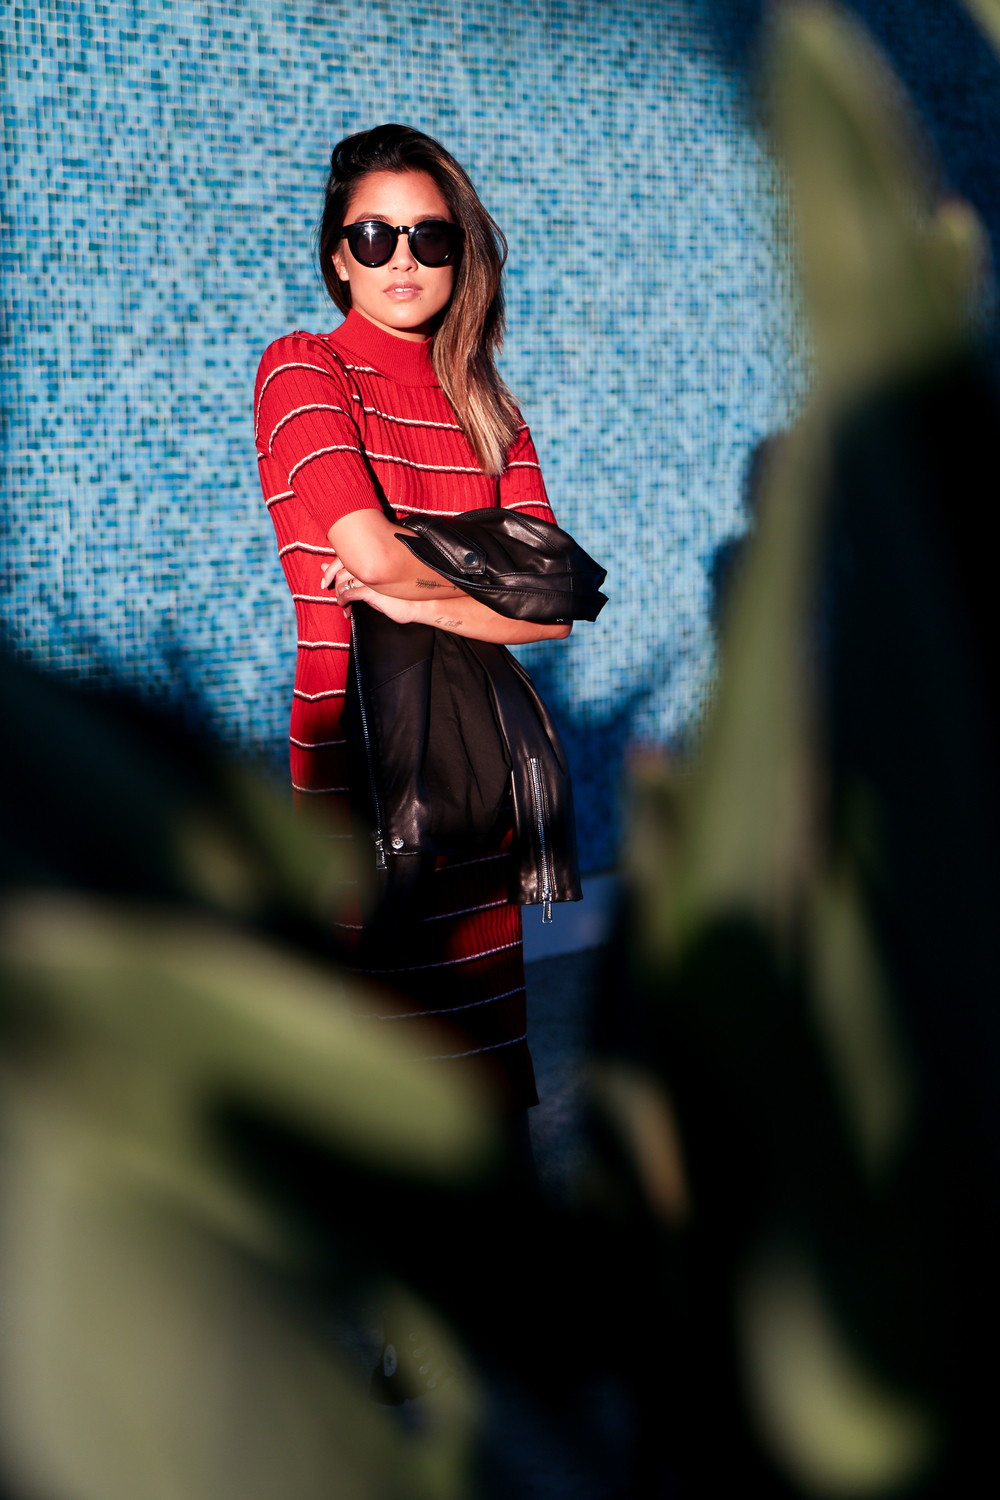 missguided   dress   | BCBGen   jacket   |   chucks   | crap   sunnies   | photos by    jon macarewa